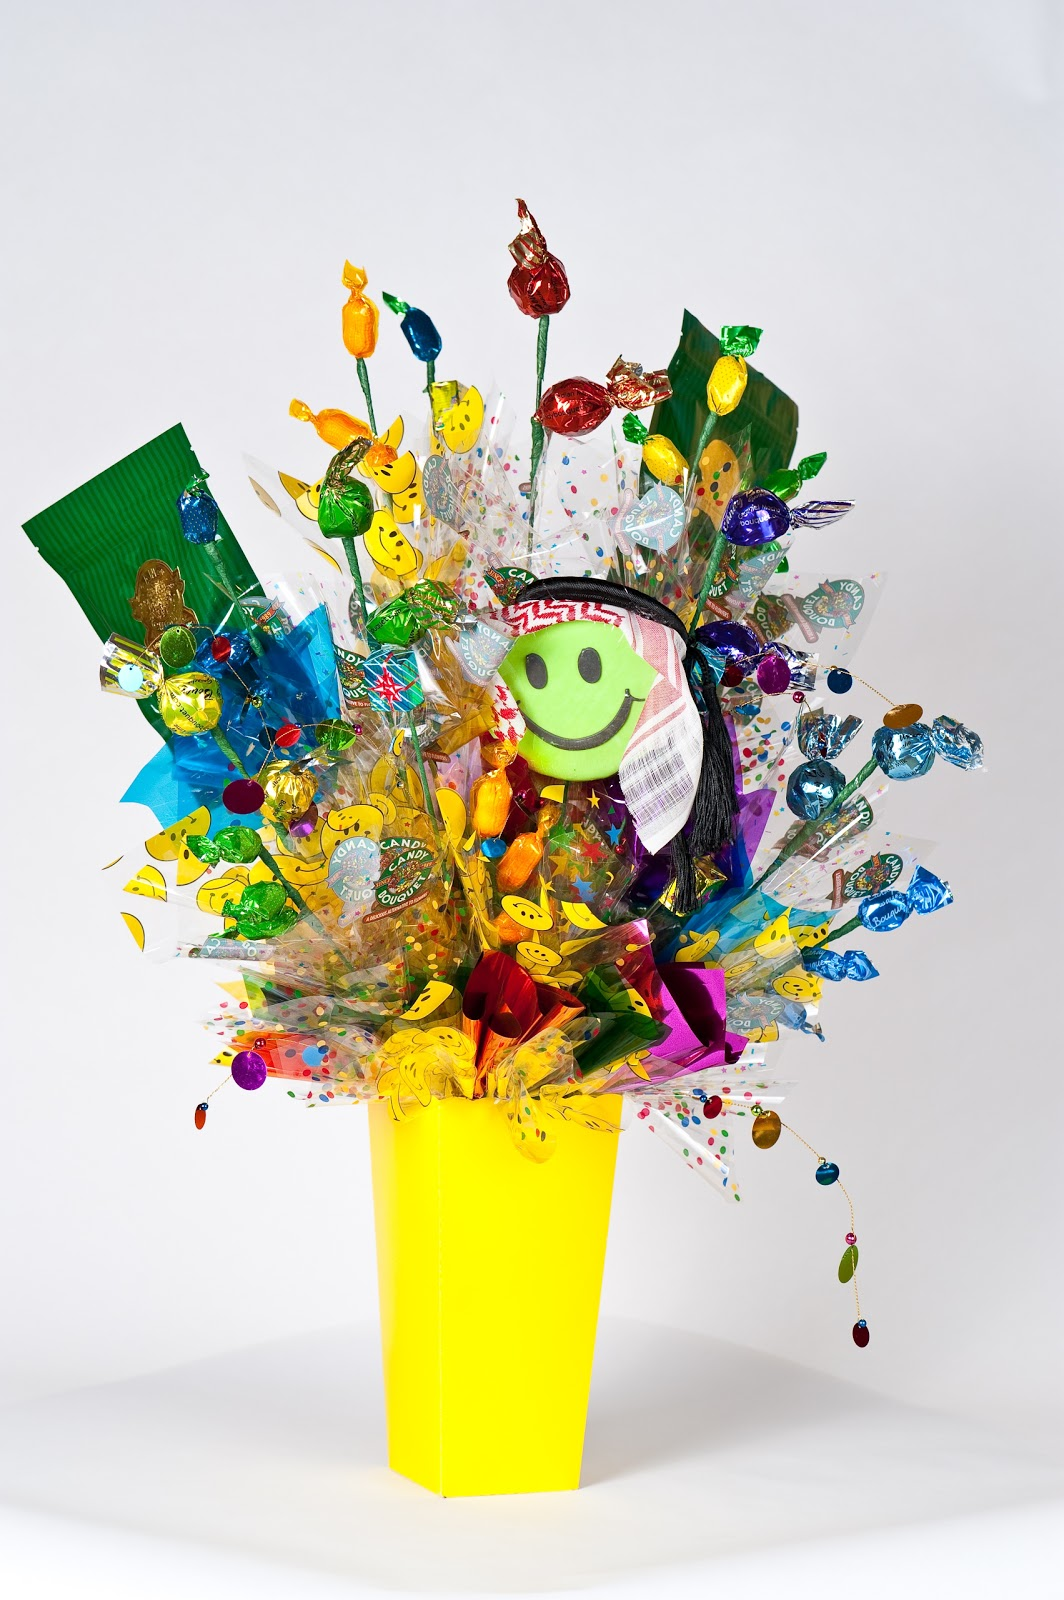 Candy Bouquet Soon In Doha: Grang3o Candy Bouquet